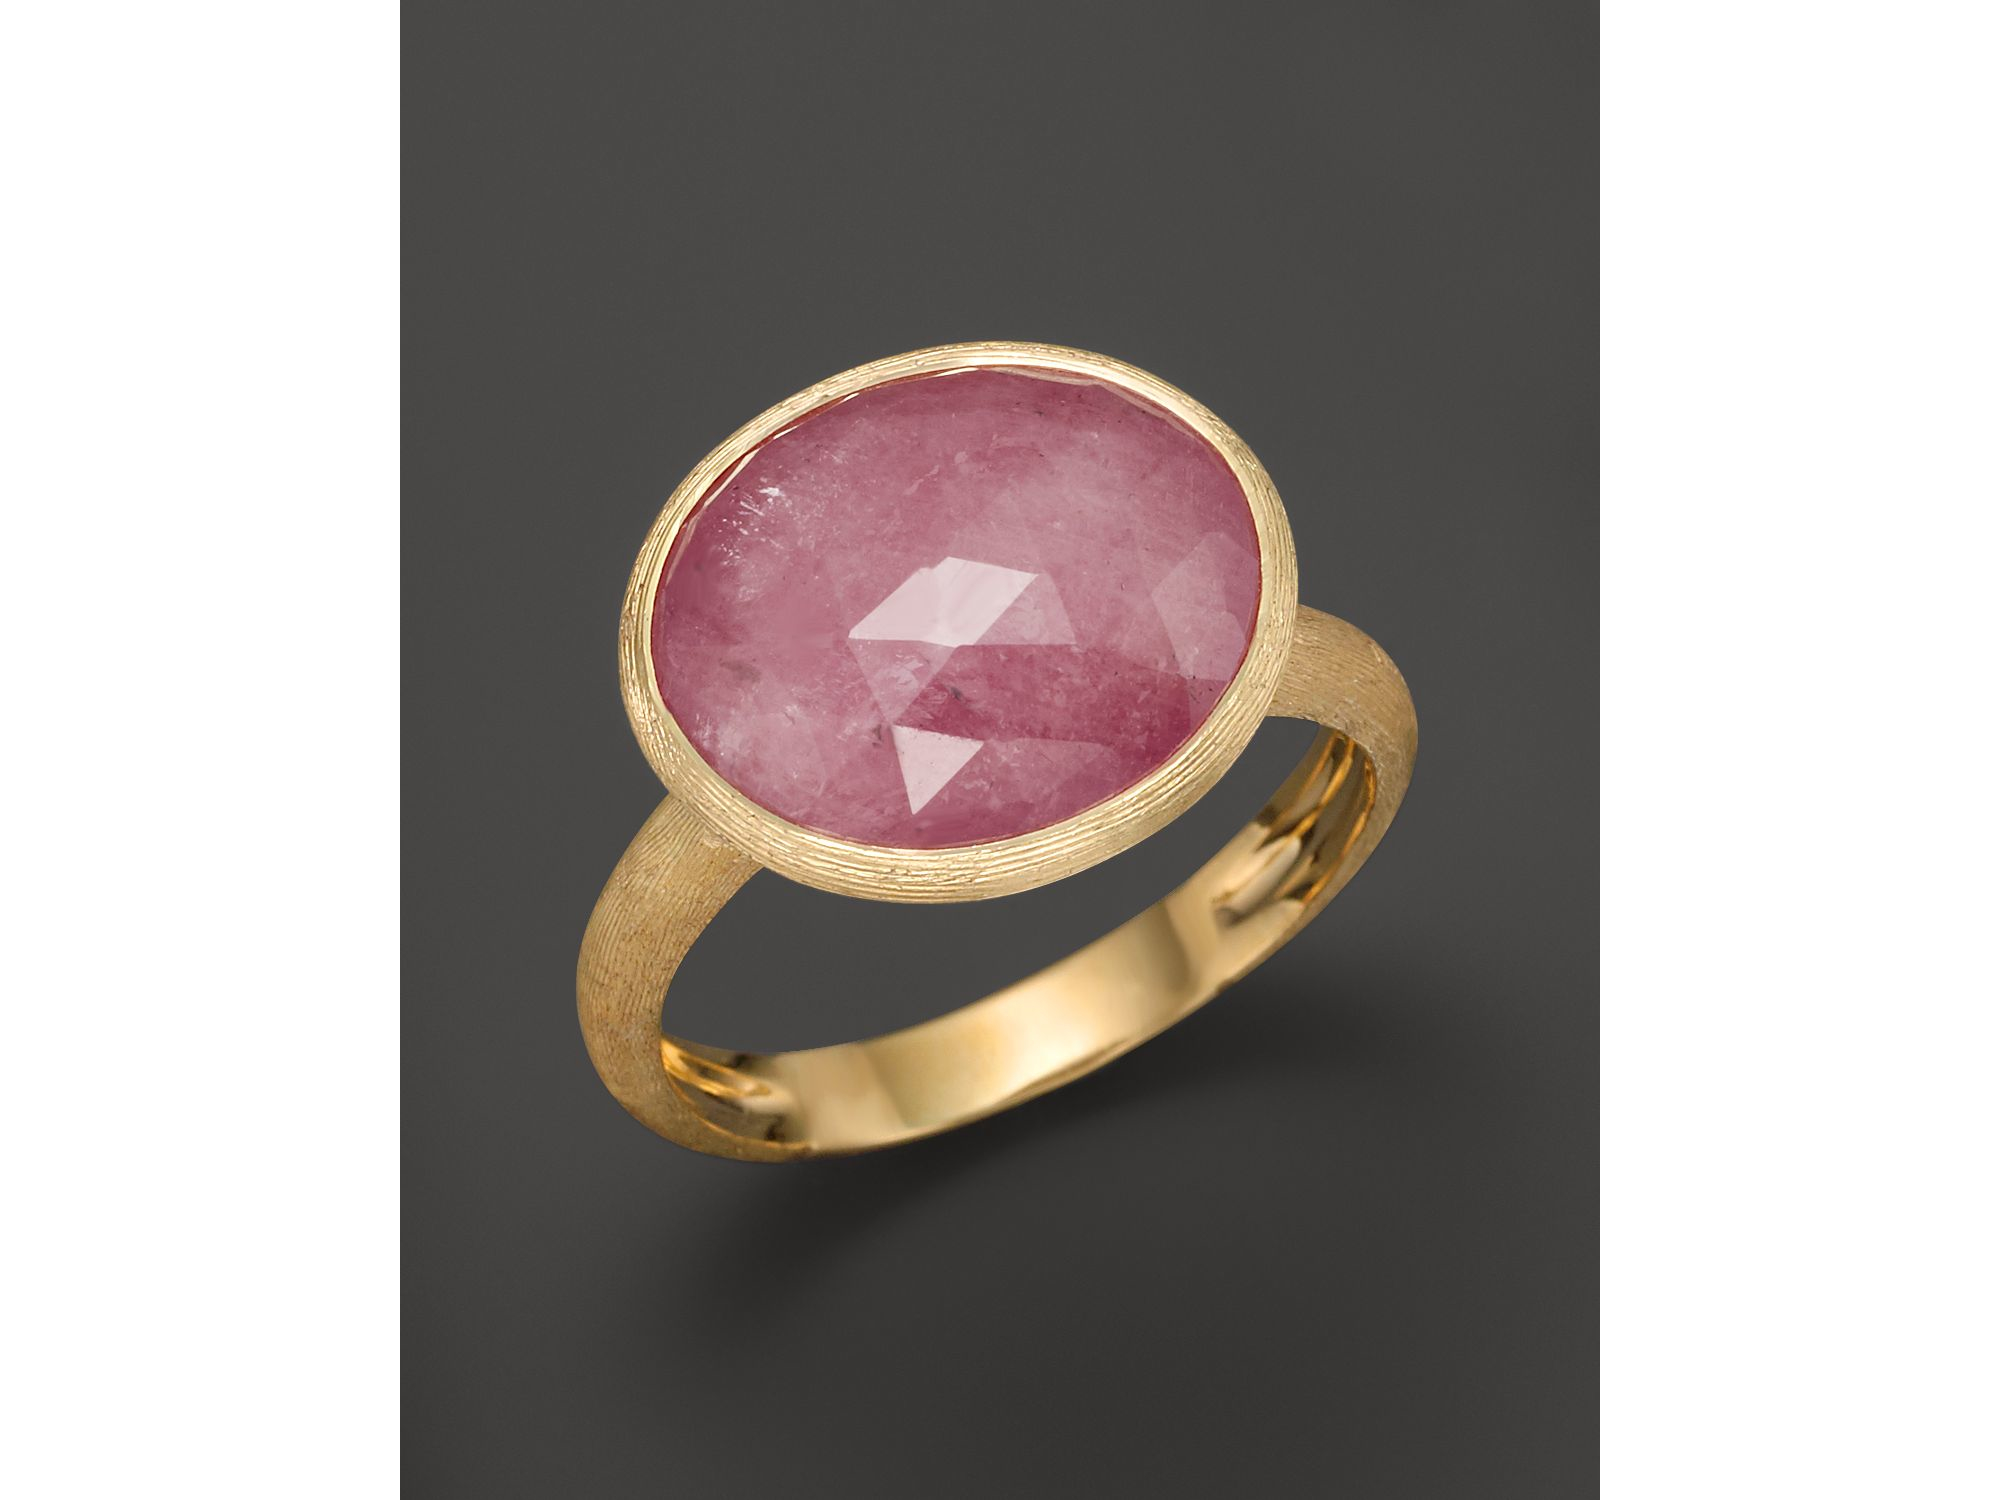 Marco Bicego Siviglia 18k Gold Pink Sapphire Ring In